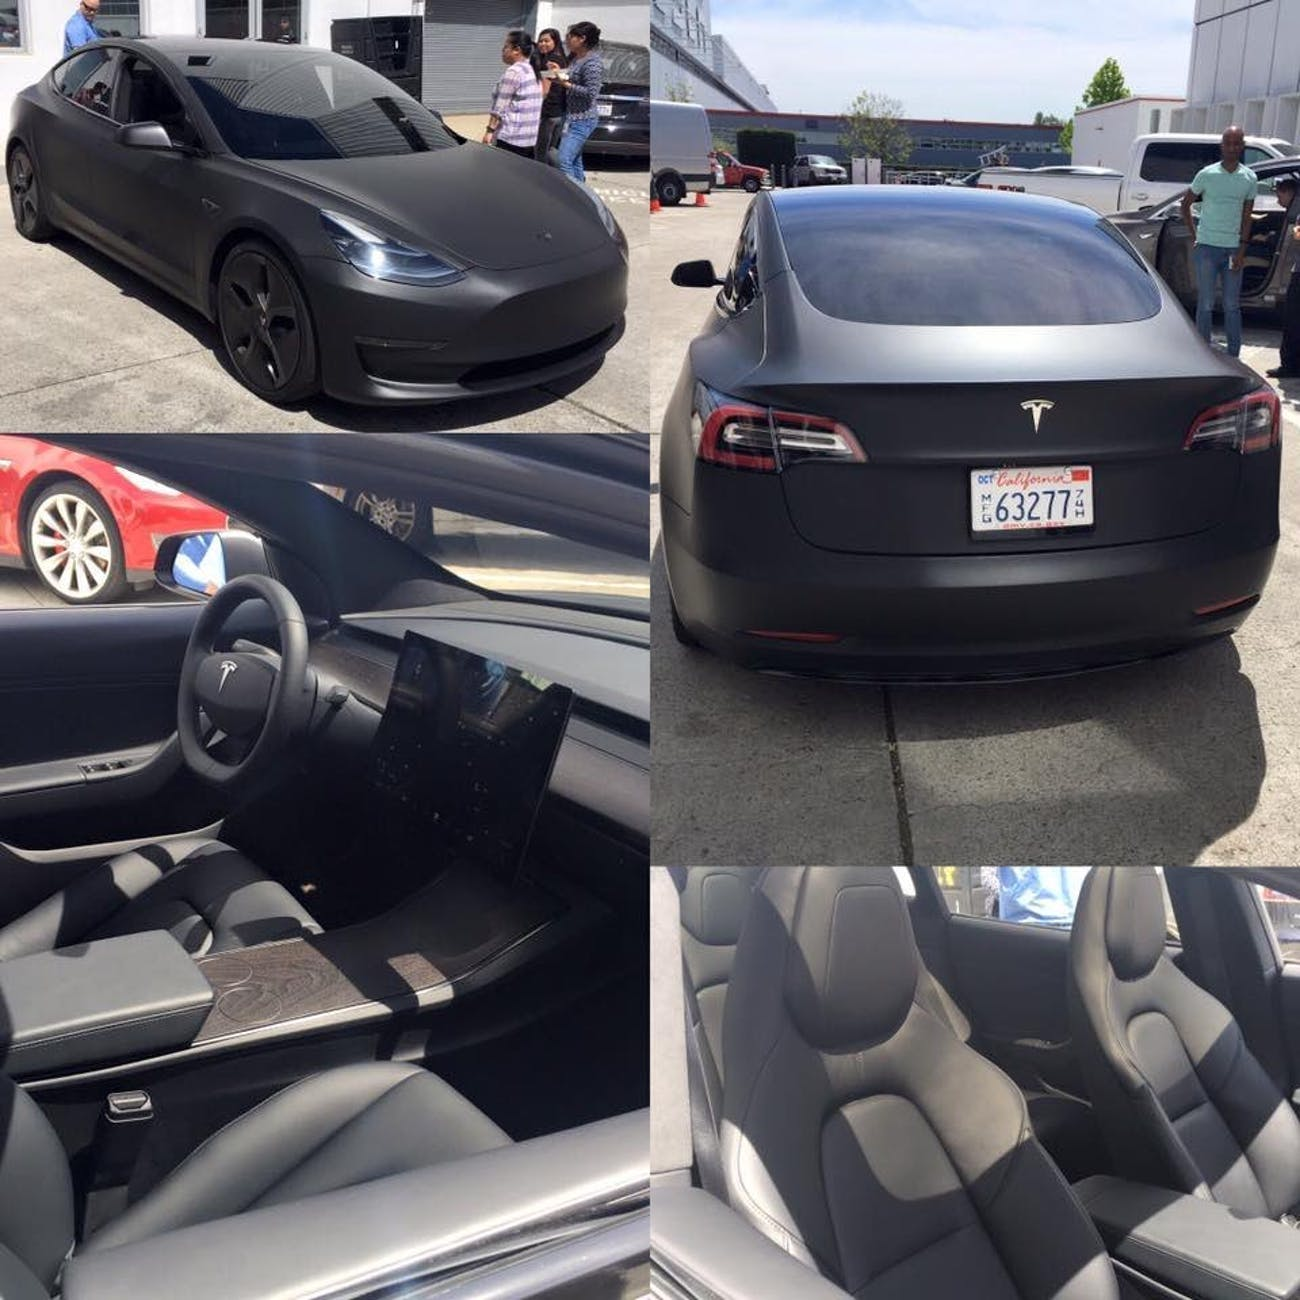 Feast Your Eyes on a Murdered-Out Tesla Model 3 Prowling